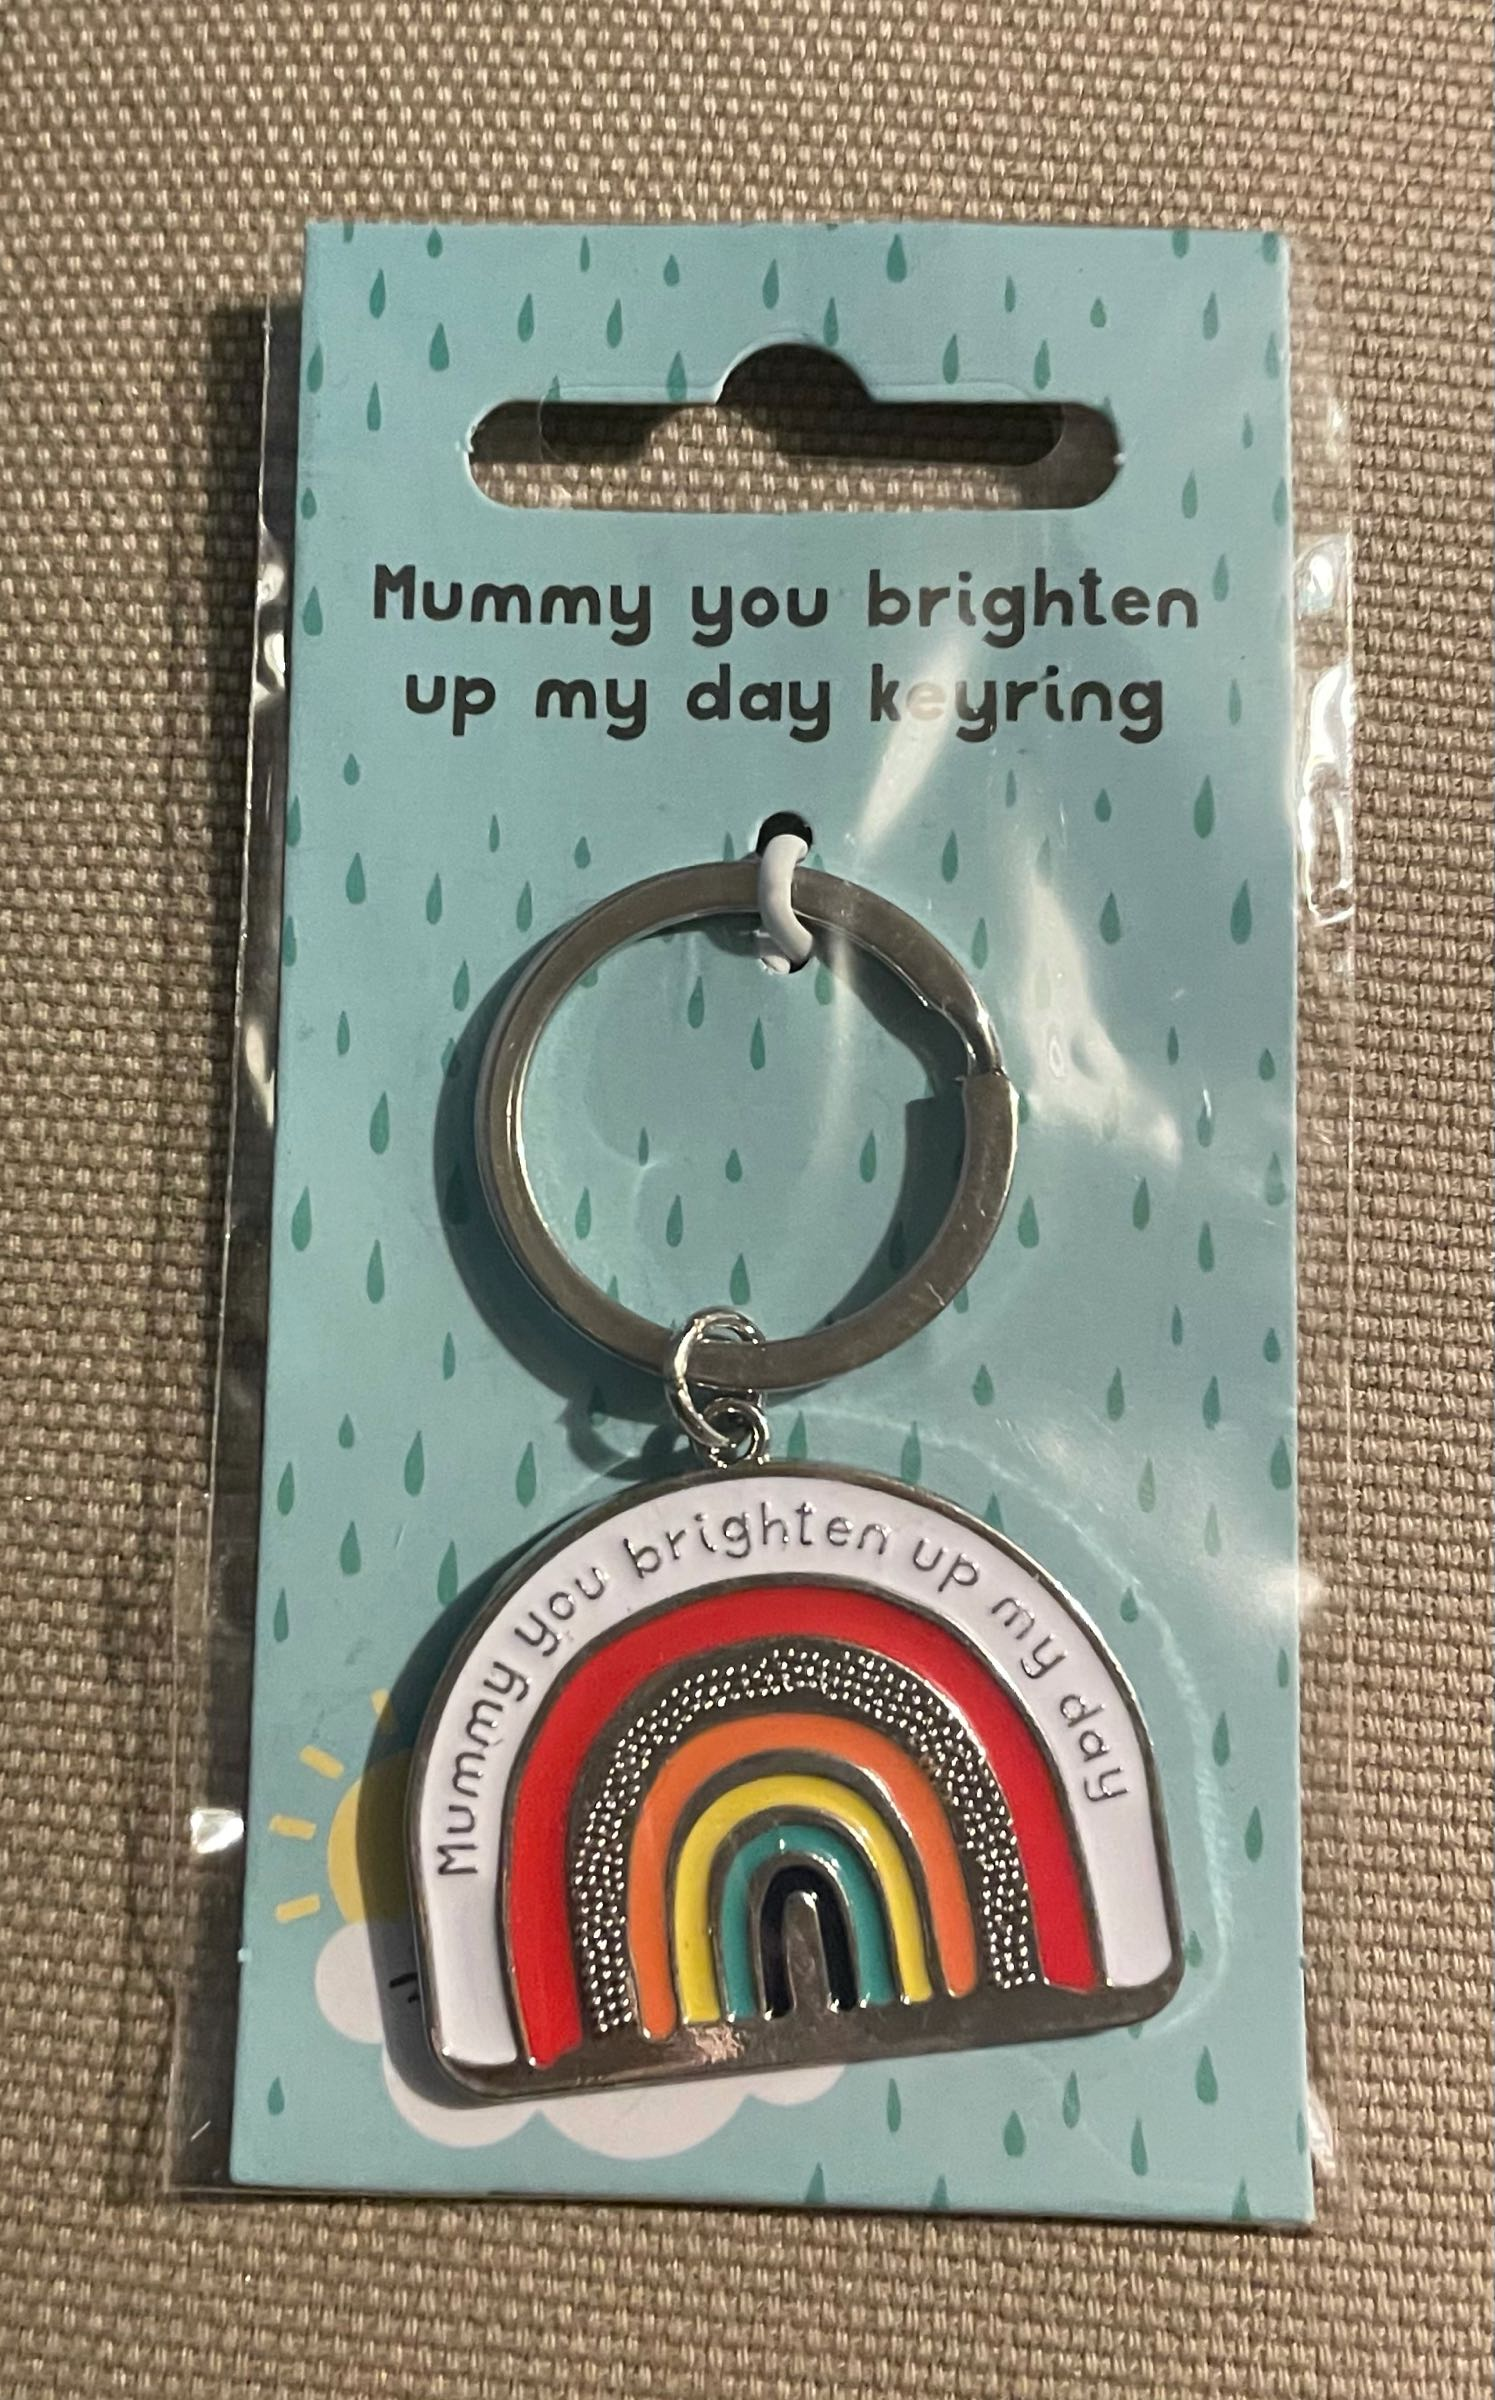 Mummy you brighten up my day Keyring